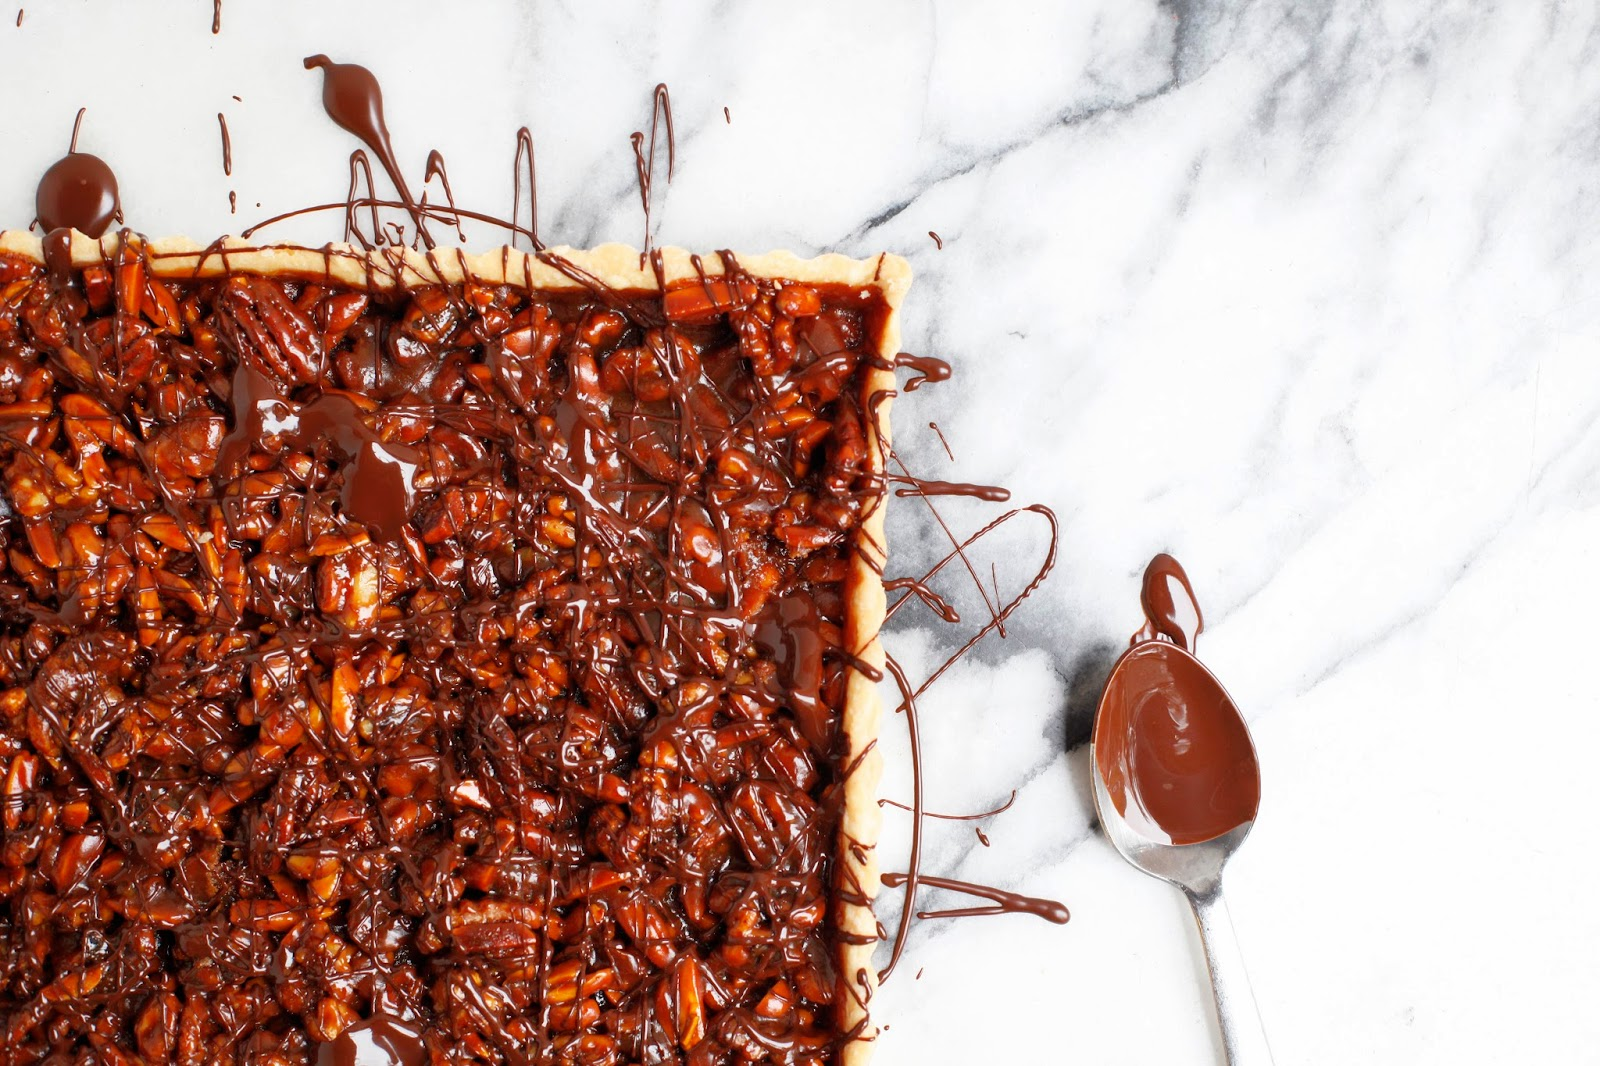 http://food52.com/recipes/32584-caramel-nut-tart-with-chocolate